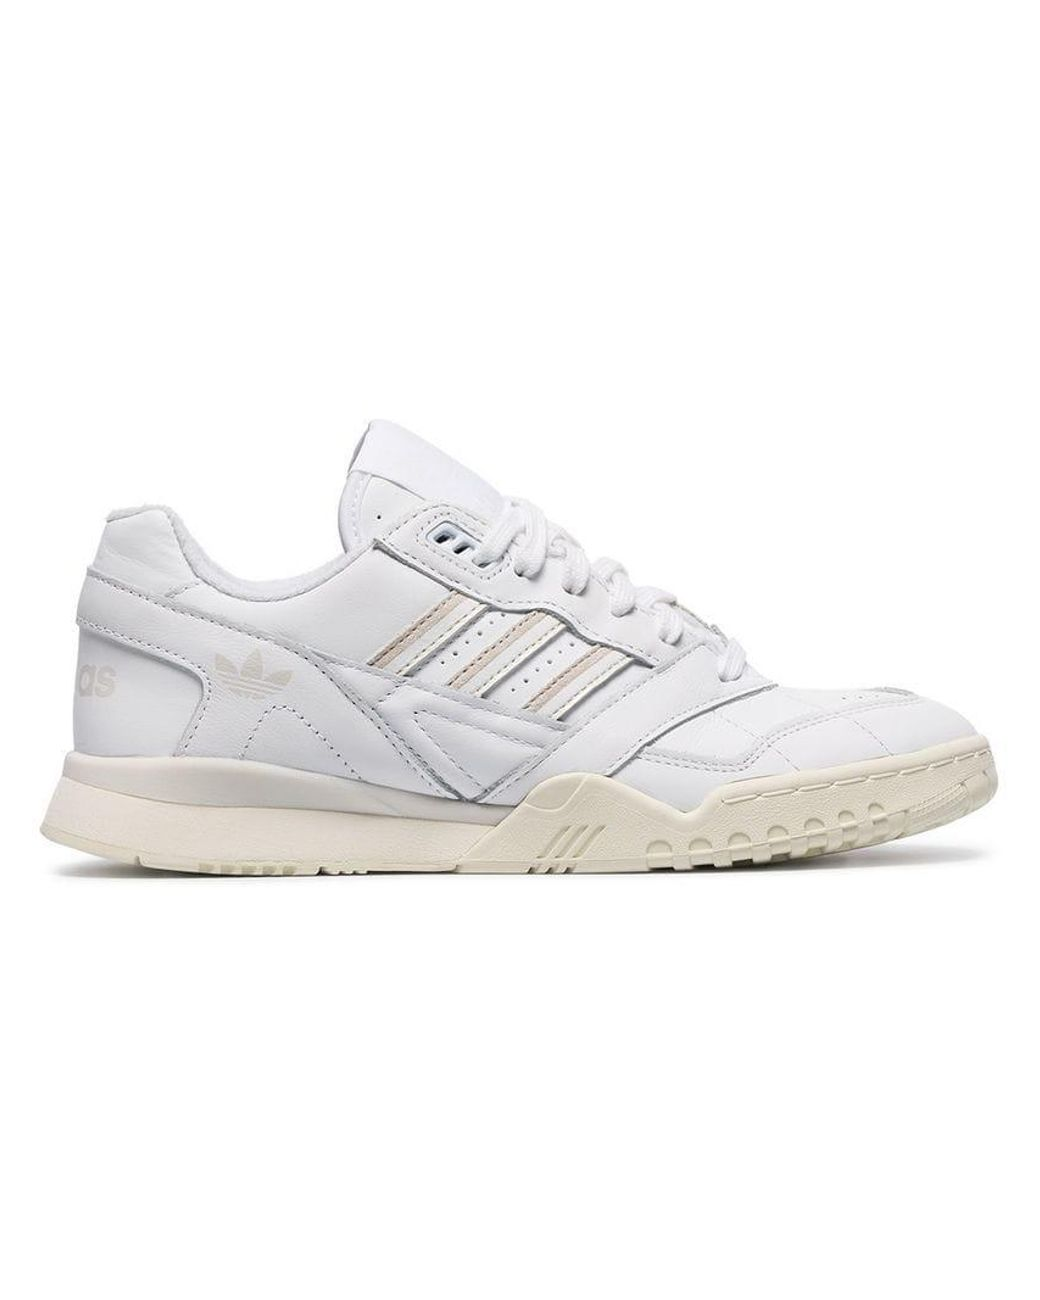 0d88b66454b Lyst - adidas White Chunky Leather Low Top Sneakers in White